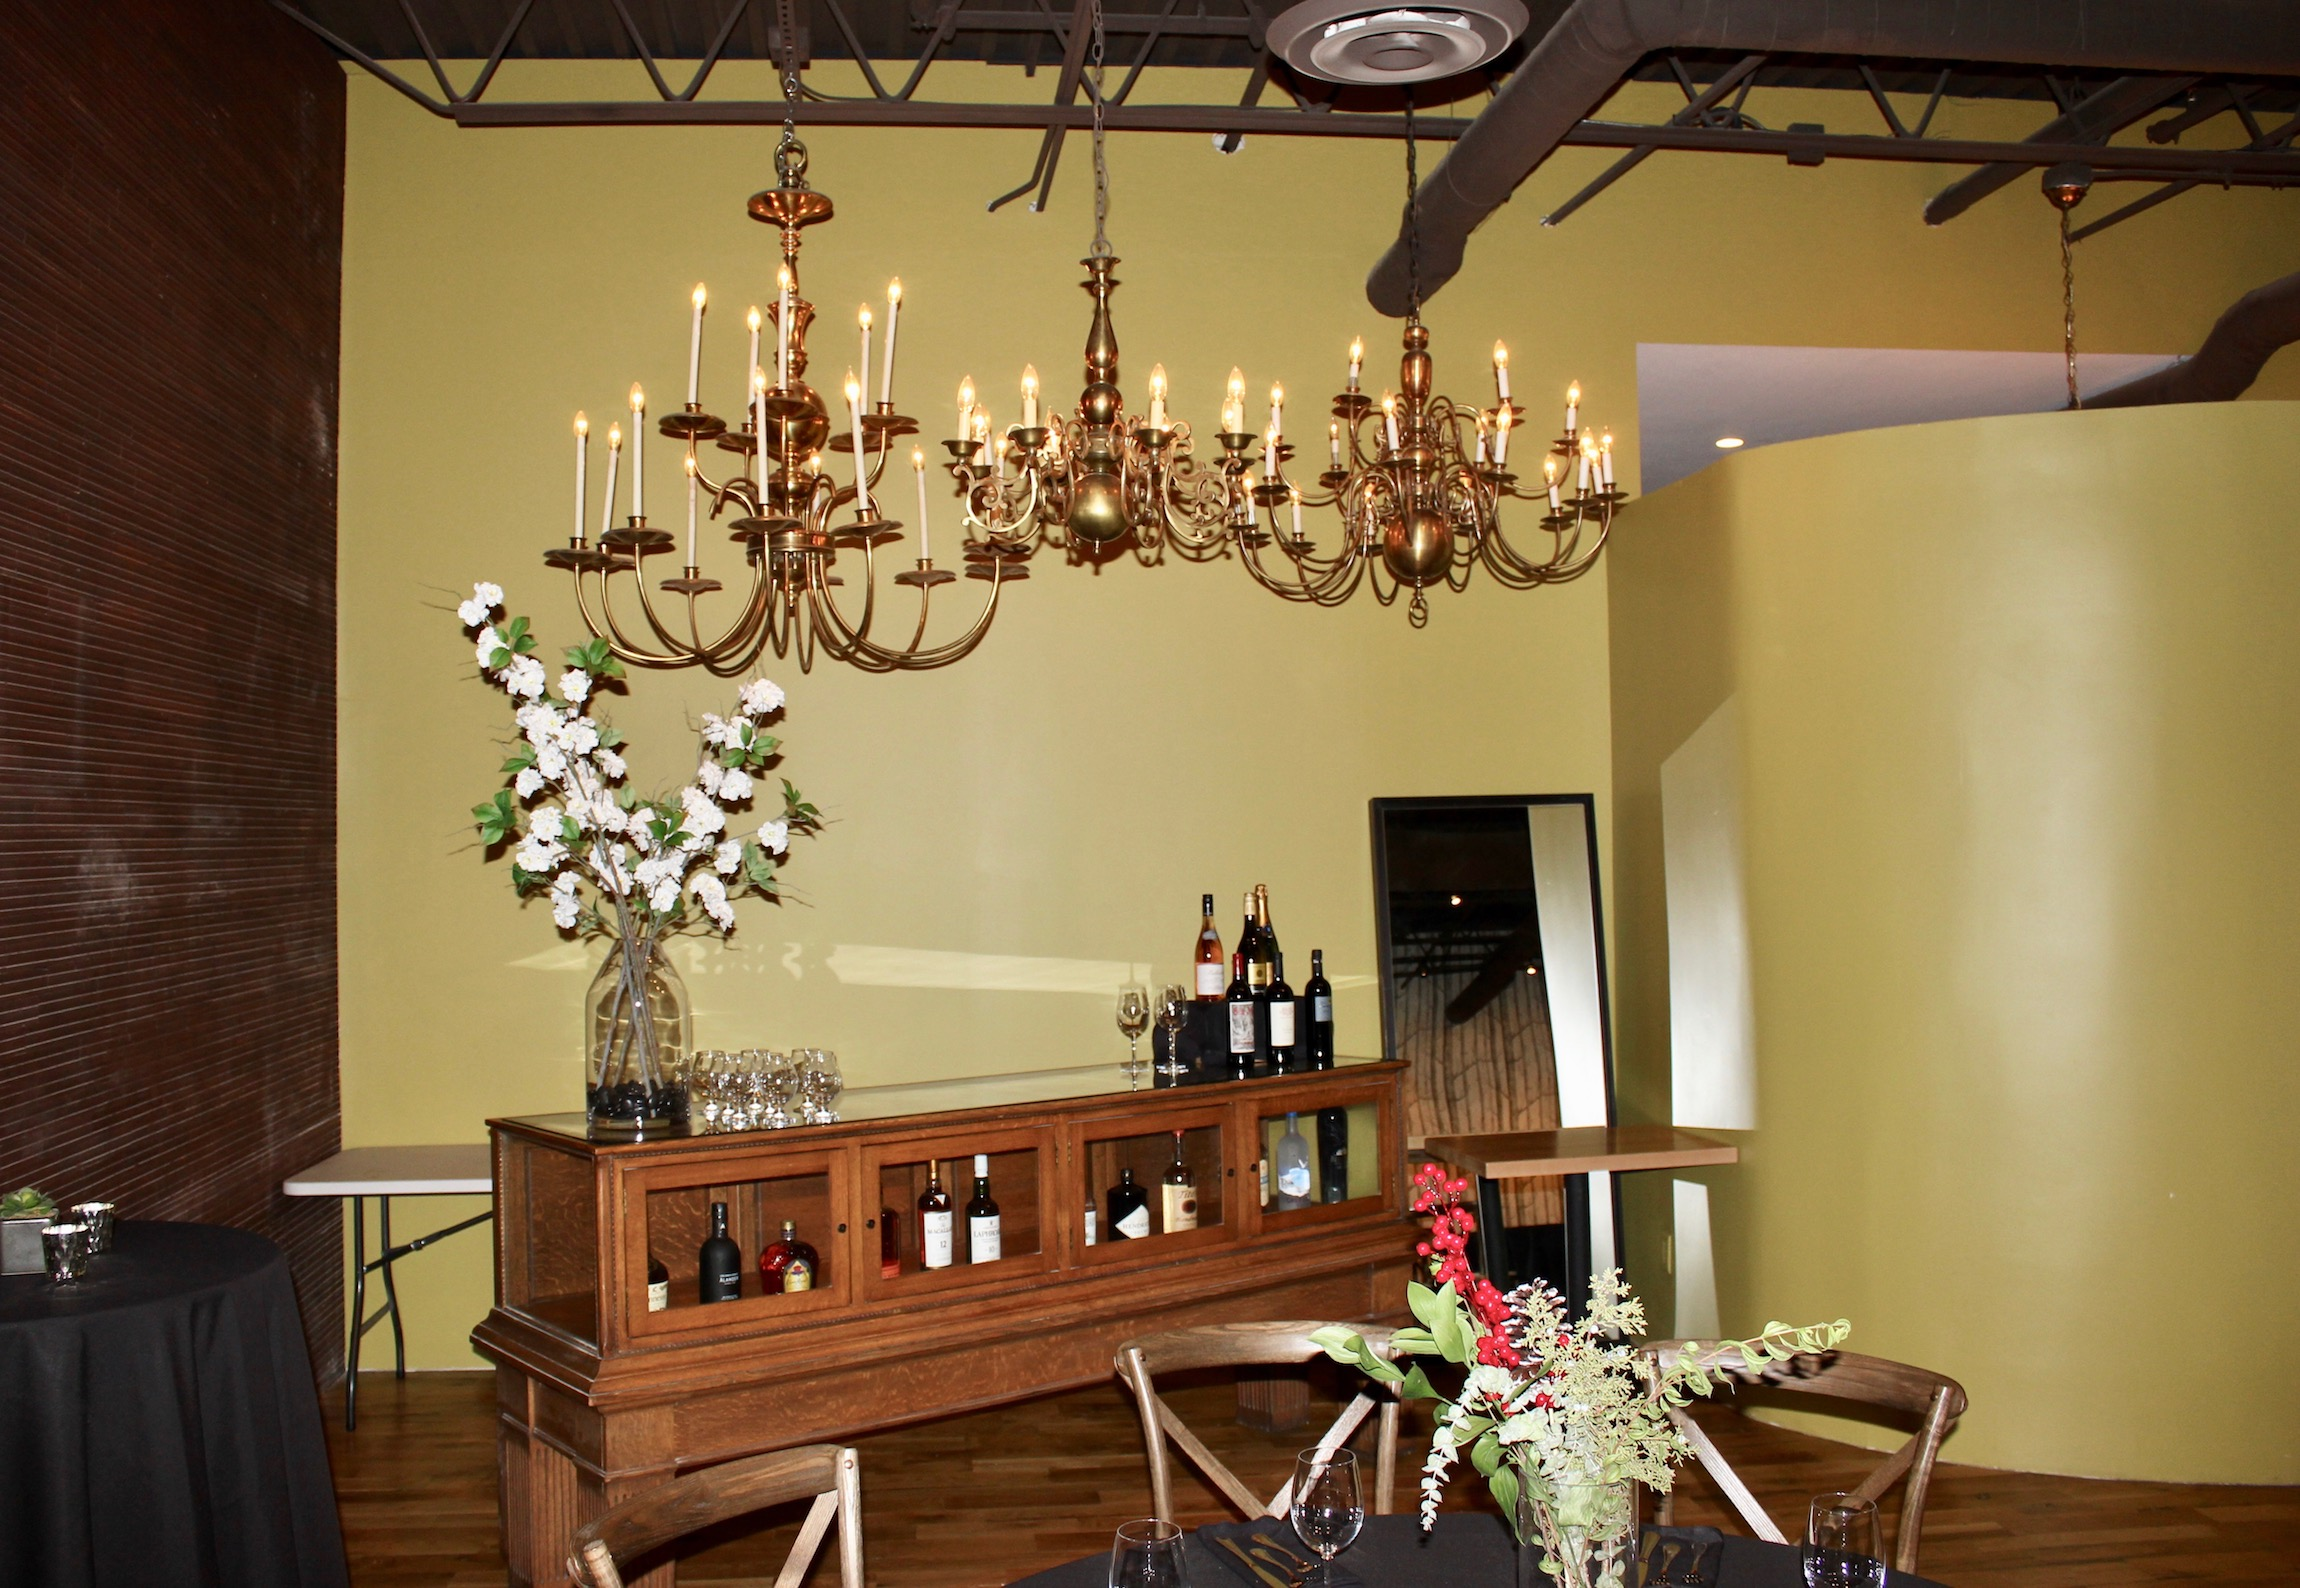 Nord Social Hall, the new events space at French Meadow Bakery on Lyndale Ave. features repurposed antiques like these 19th century chandeliers and an old jewelry display case repurposed as a bar. Photo by Andrew Hazzard